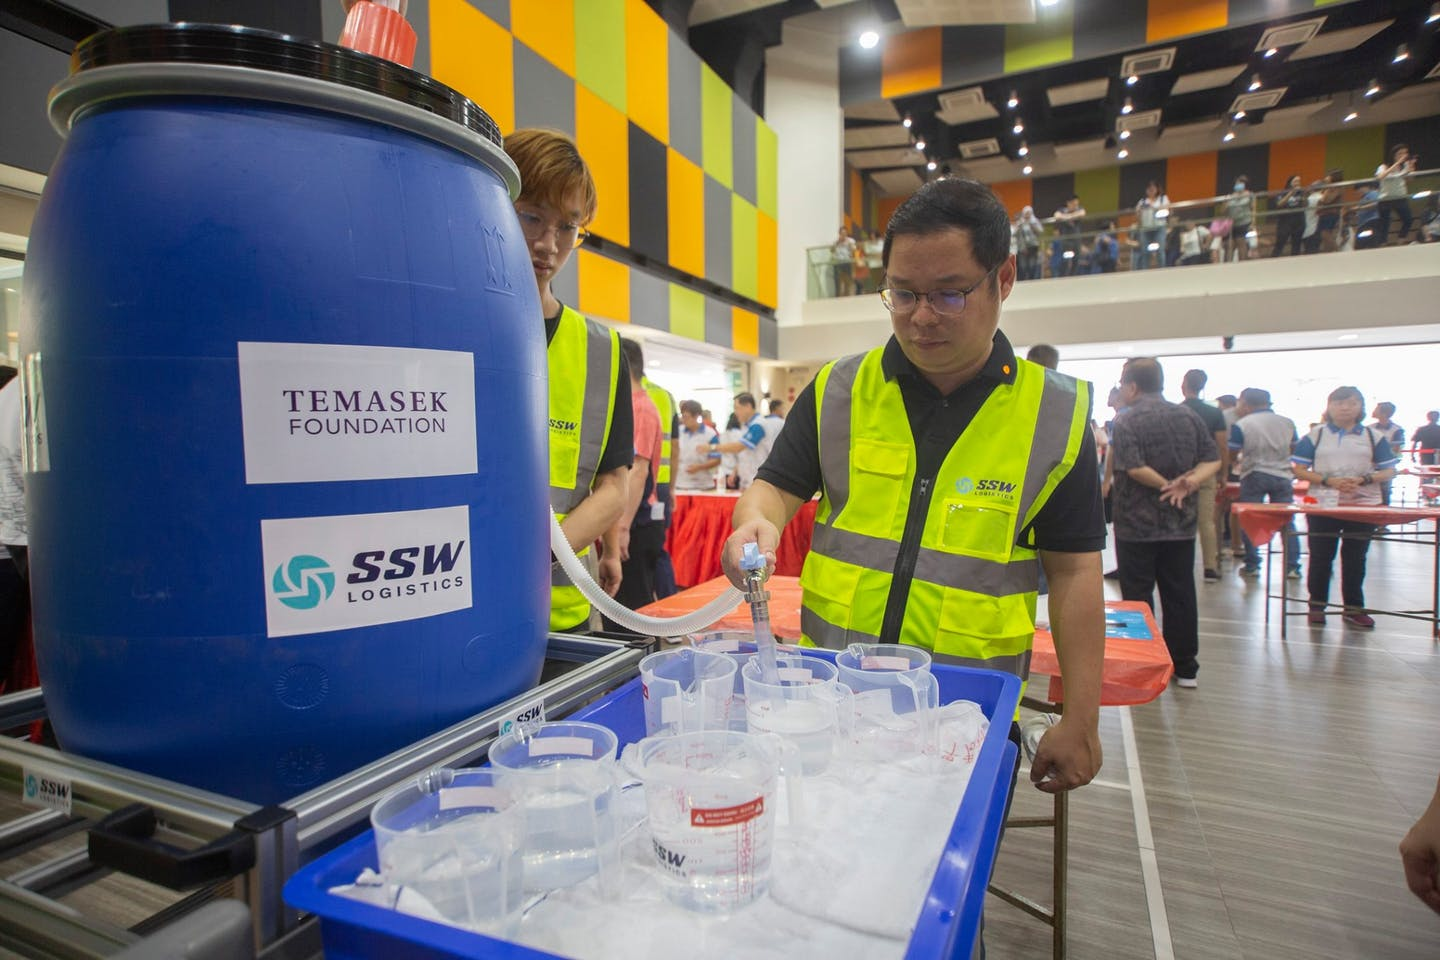 Temasek Foundation partners People's Association, corporates, unions, universities and community organisations to provide free hand sanitiser to Singapore households